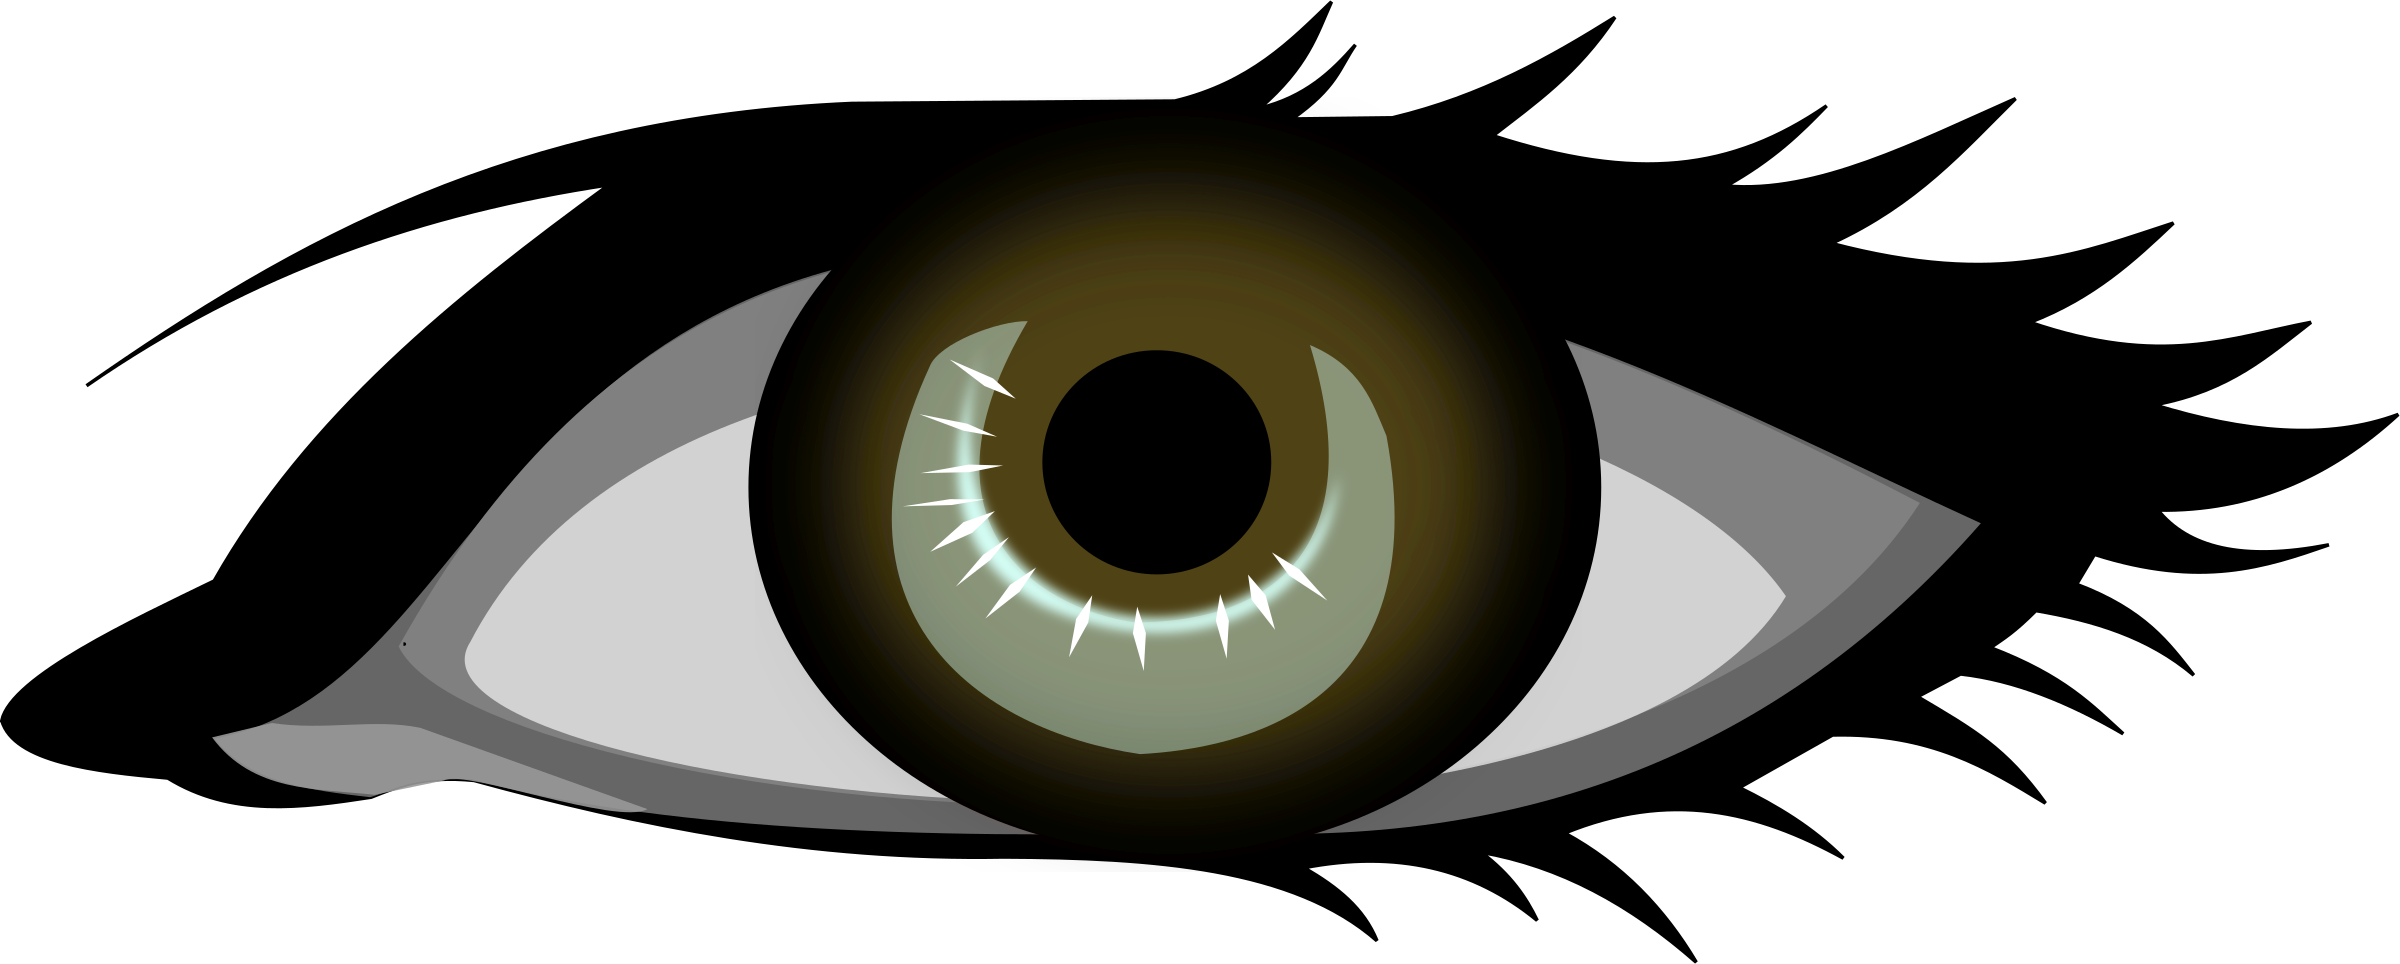 Eye clipart human eye. Viewing gallery for free